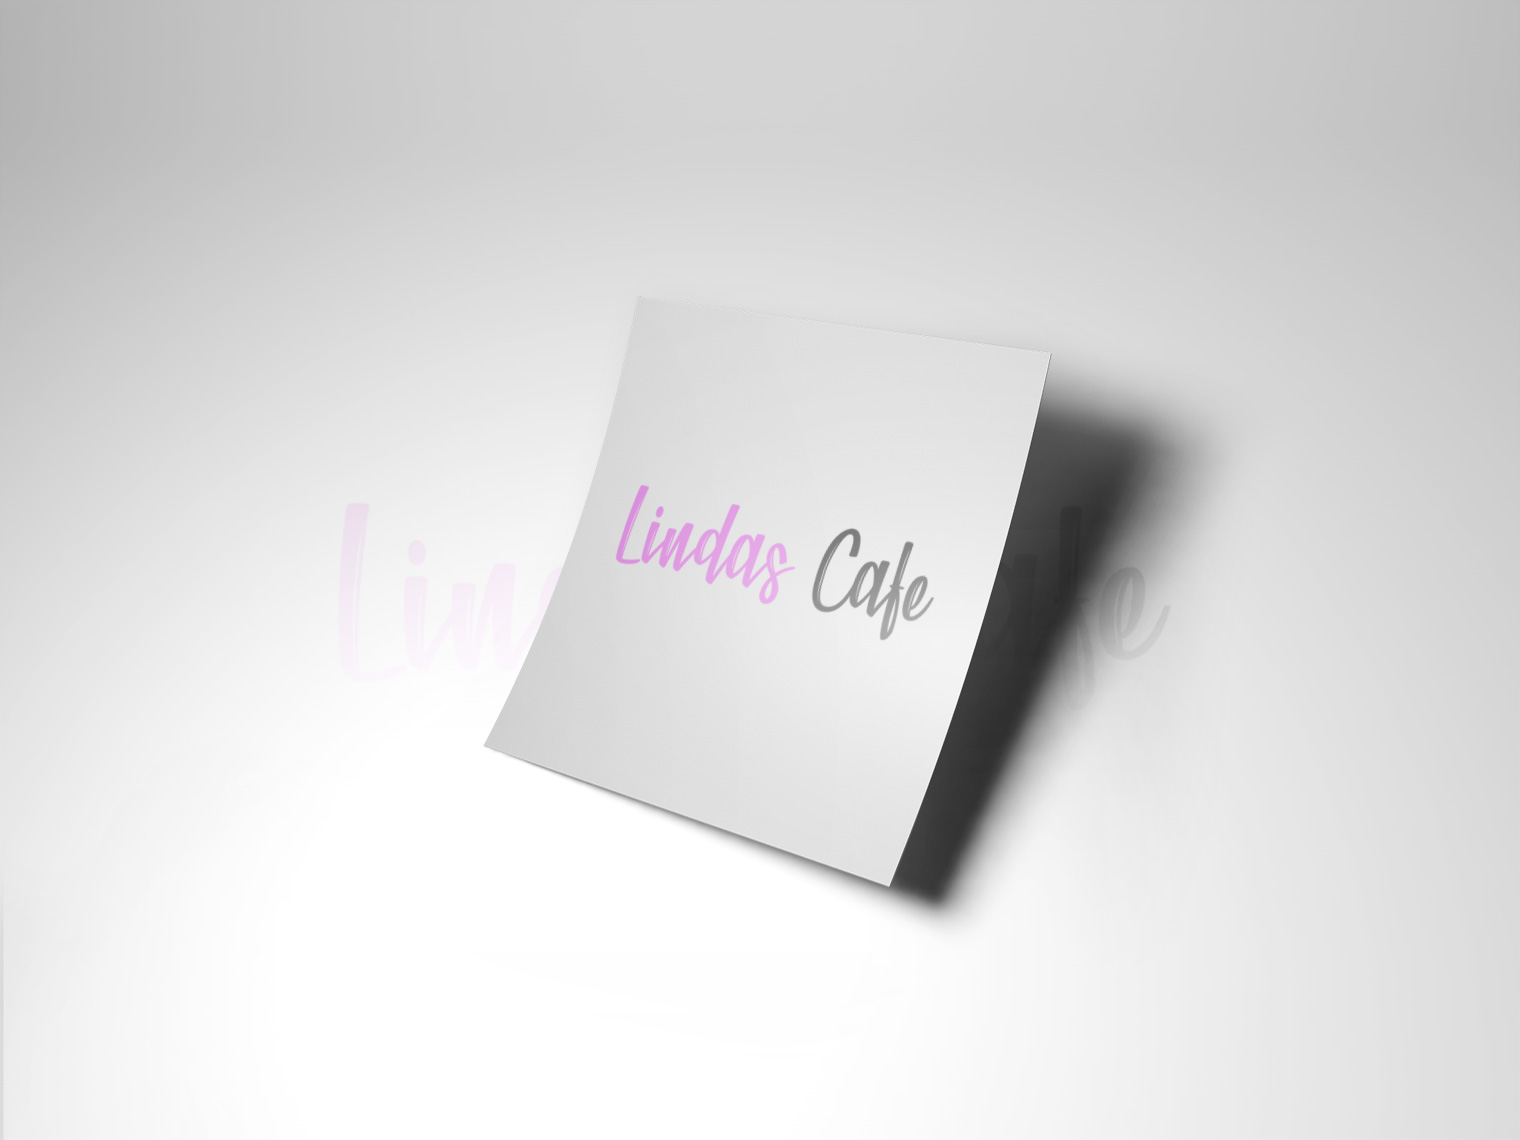 An image of white paper with the lindas cafe logo on it in the middle